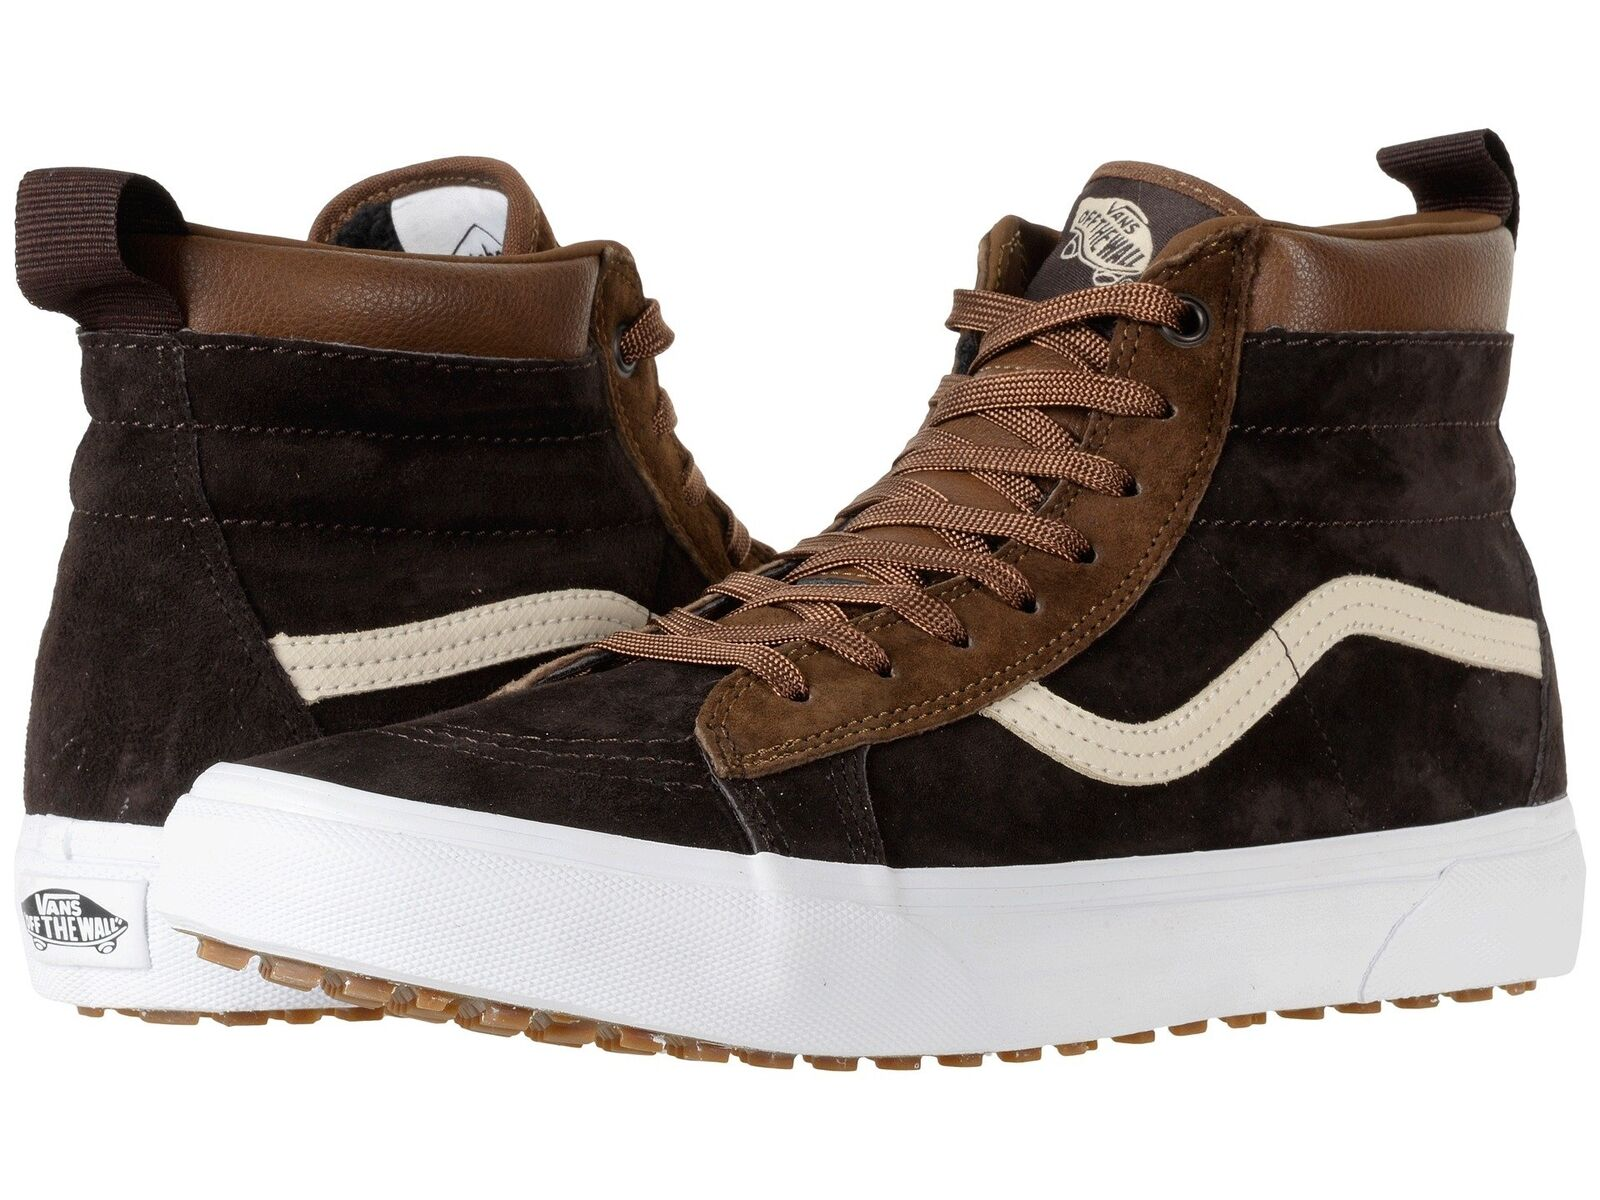 Vans Men's Sk8-Hi MTE Lace Up Fashion Sneaker Dark Earth Seal Brown